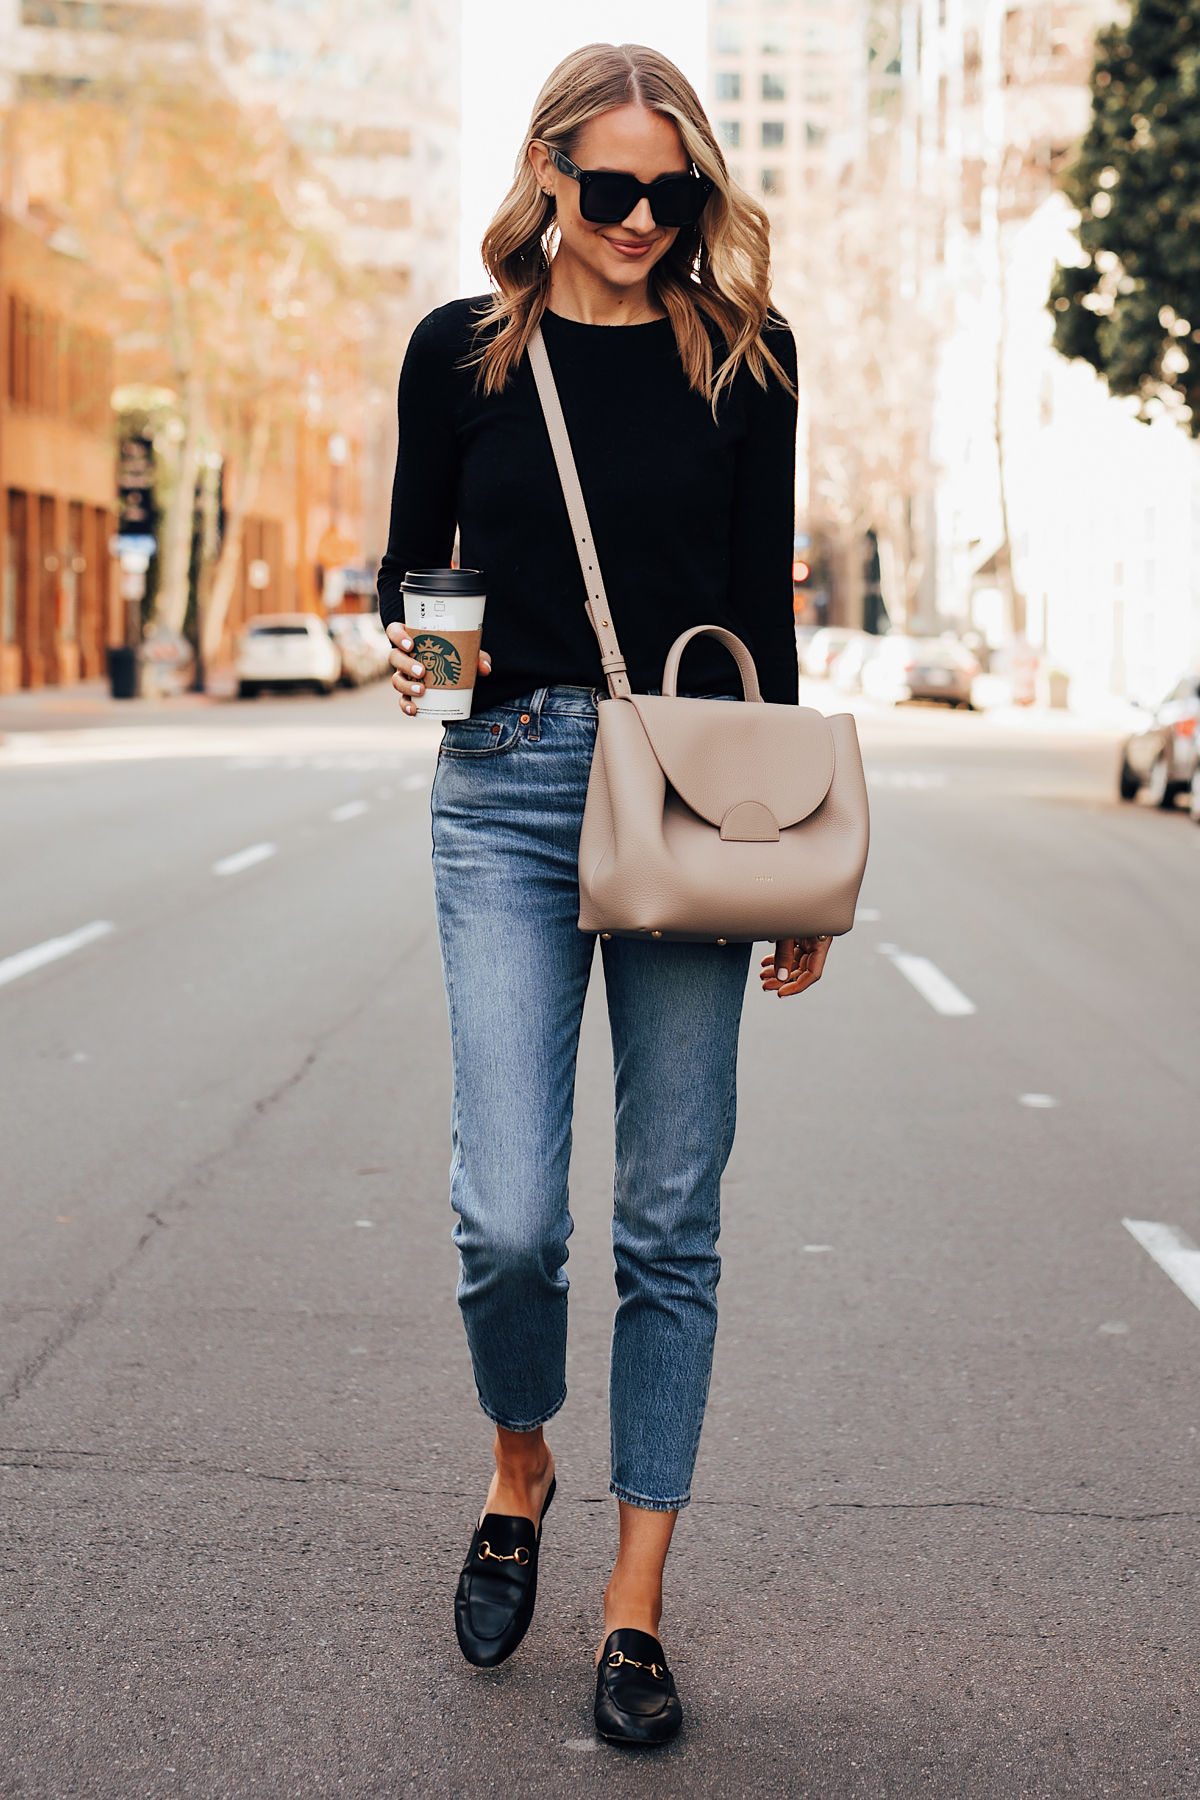 Blonde Woman Wearing Everlane Black Cashmere Sweater Levis 501 Jeans Gucci Princetown Mules Black Polene Numero Un Handbag Grey Fashion Jackson San Diego Fashion Blogger Street Style